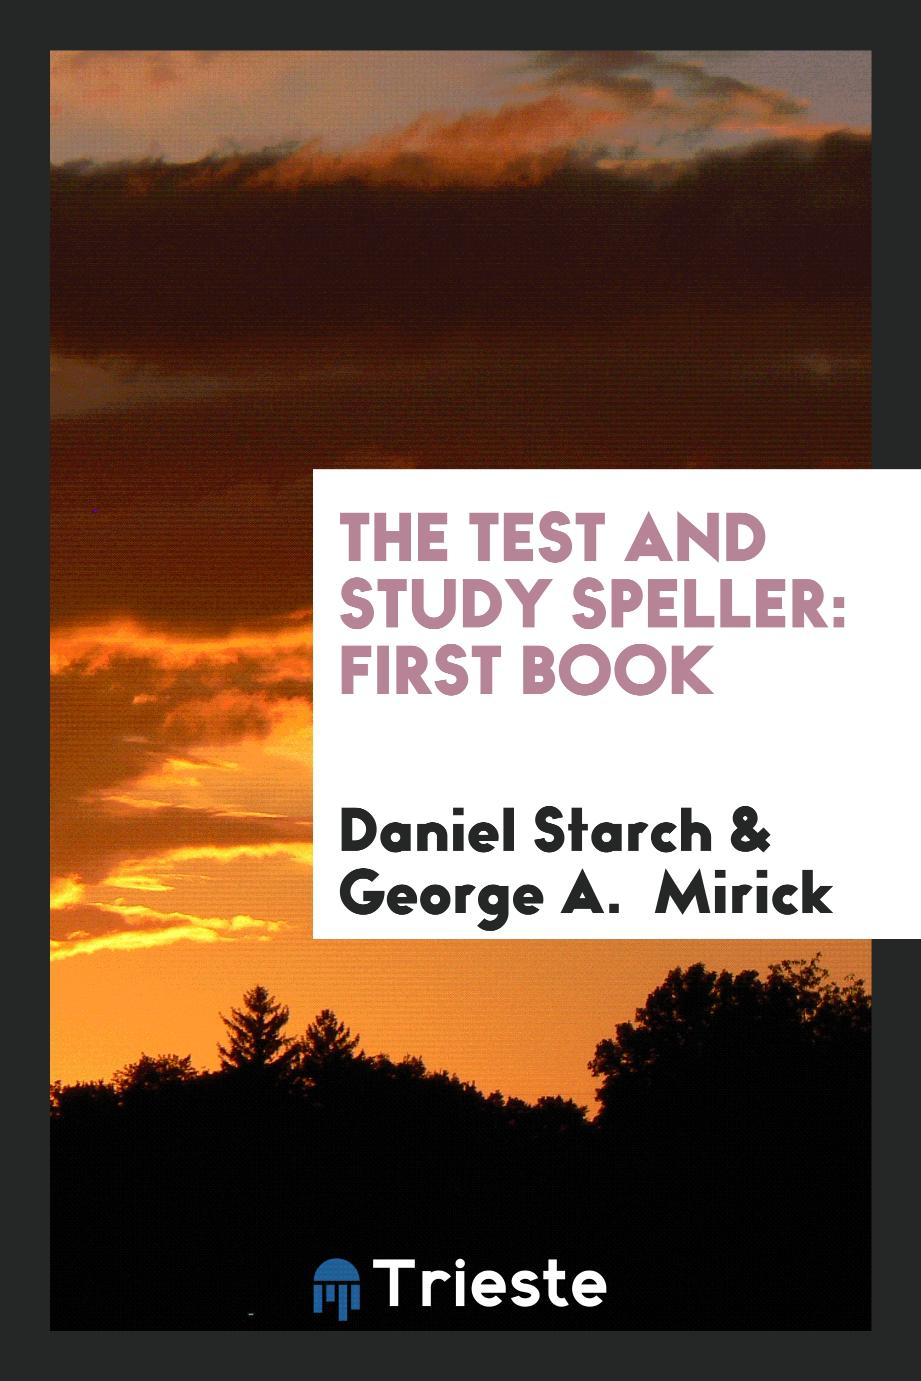 The Test and Study Speller: First Book